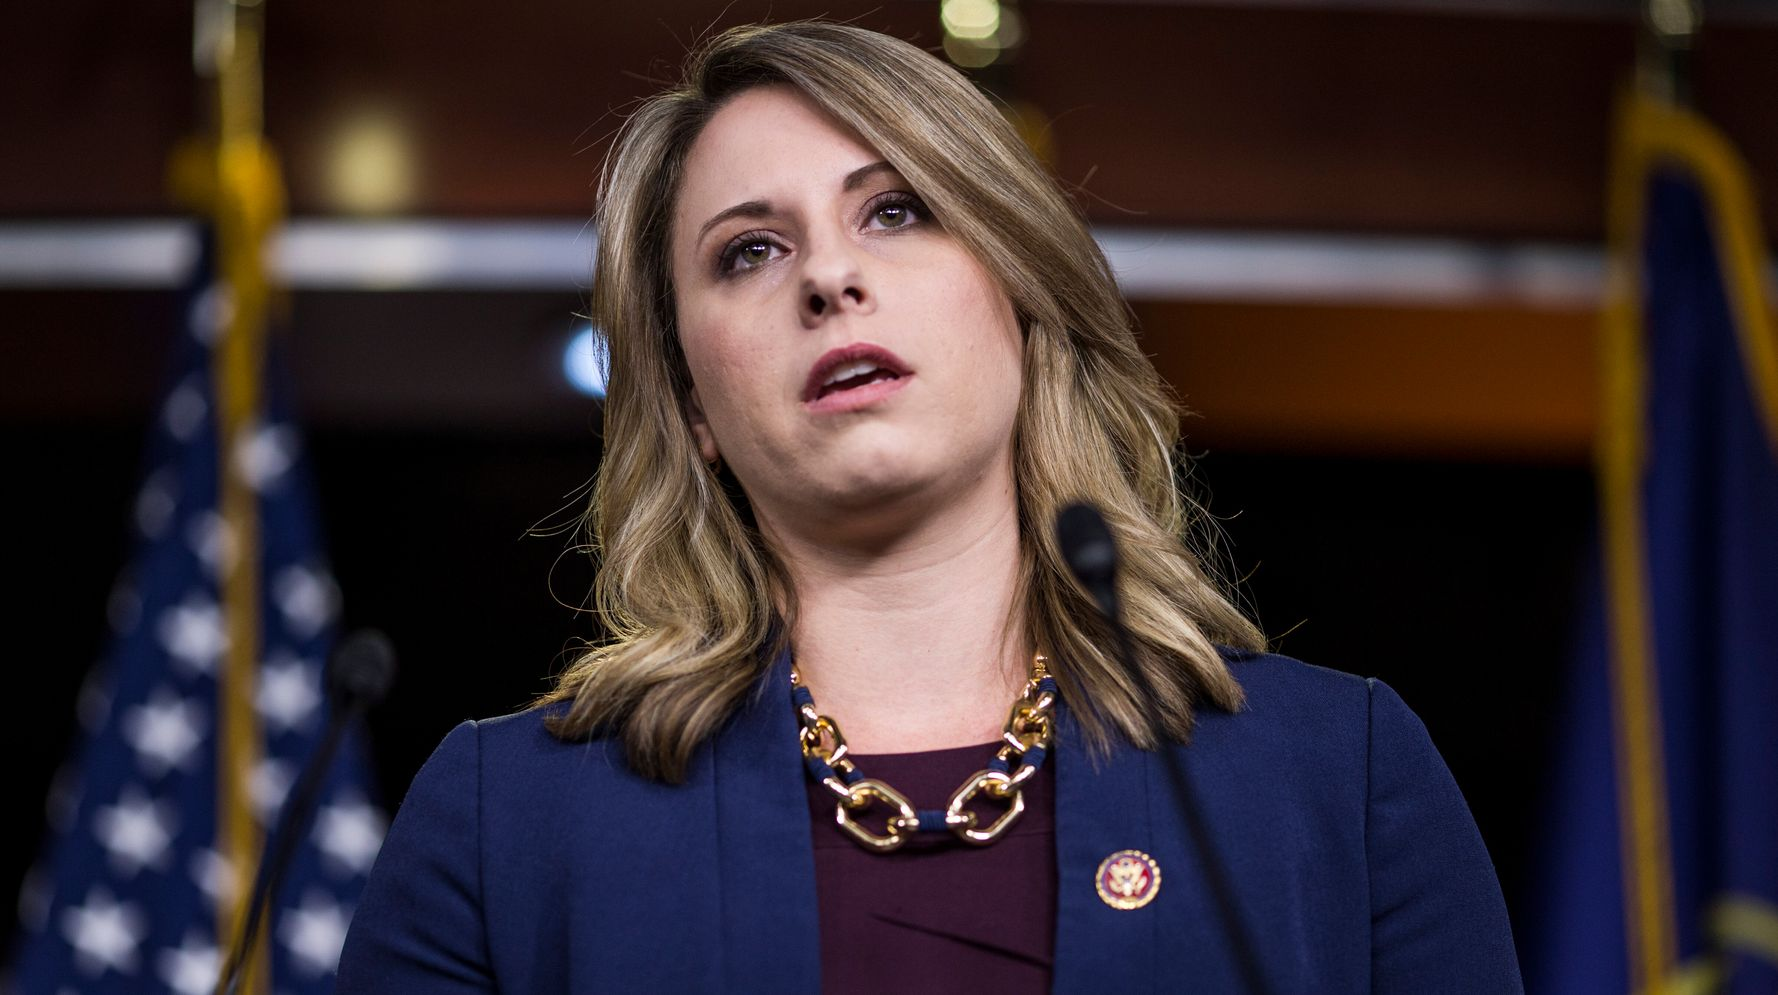 Westlake Legal Group 5db1f2592100005f2534afa7 Rep. Katie Hill Resigns Amid Ethics Probe Into Alleged Relationship With Staffer